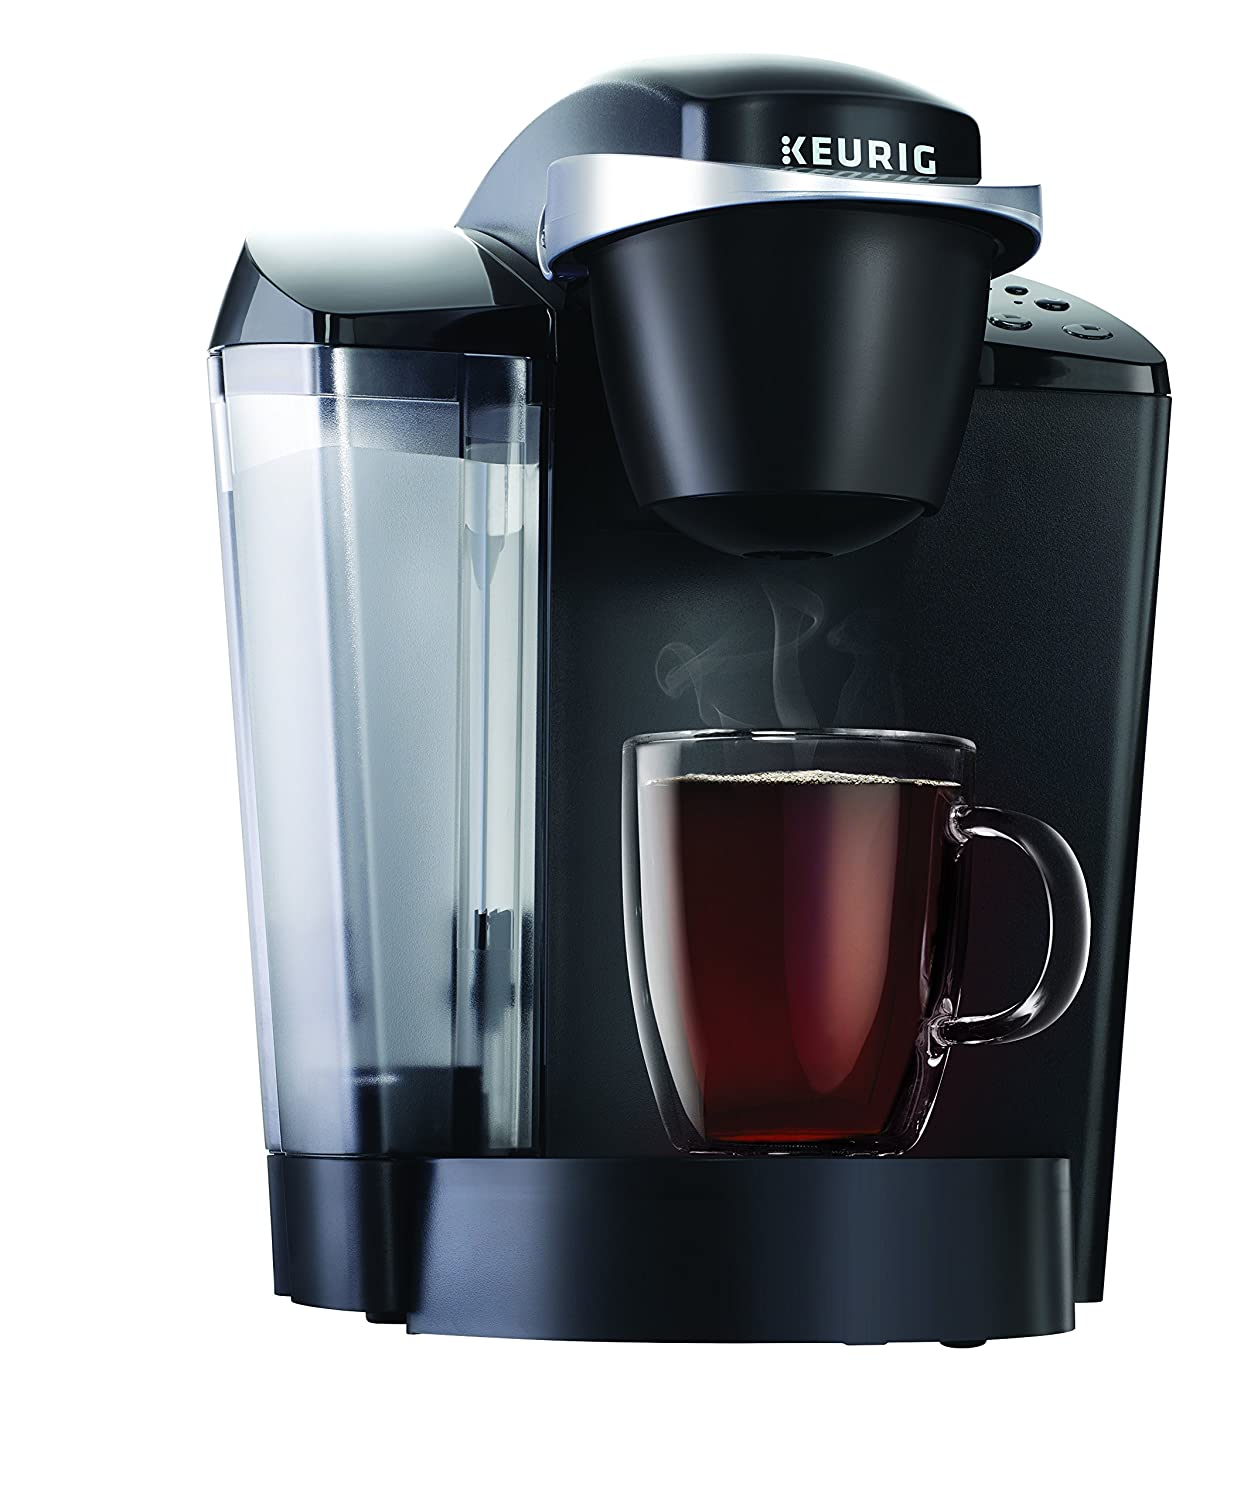 Keurig K55 Coffee Maker - What to Get your Girlfriend's Parents for Christmas 2016